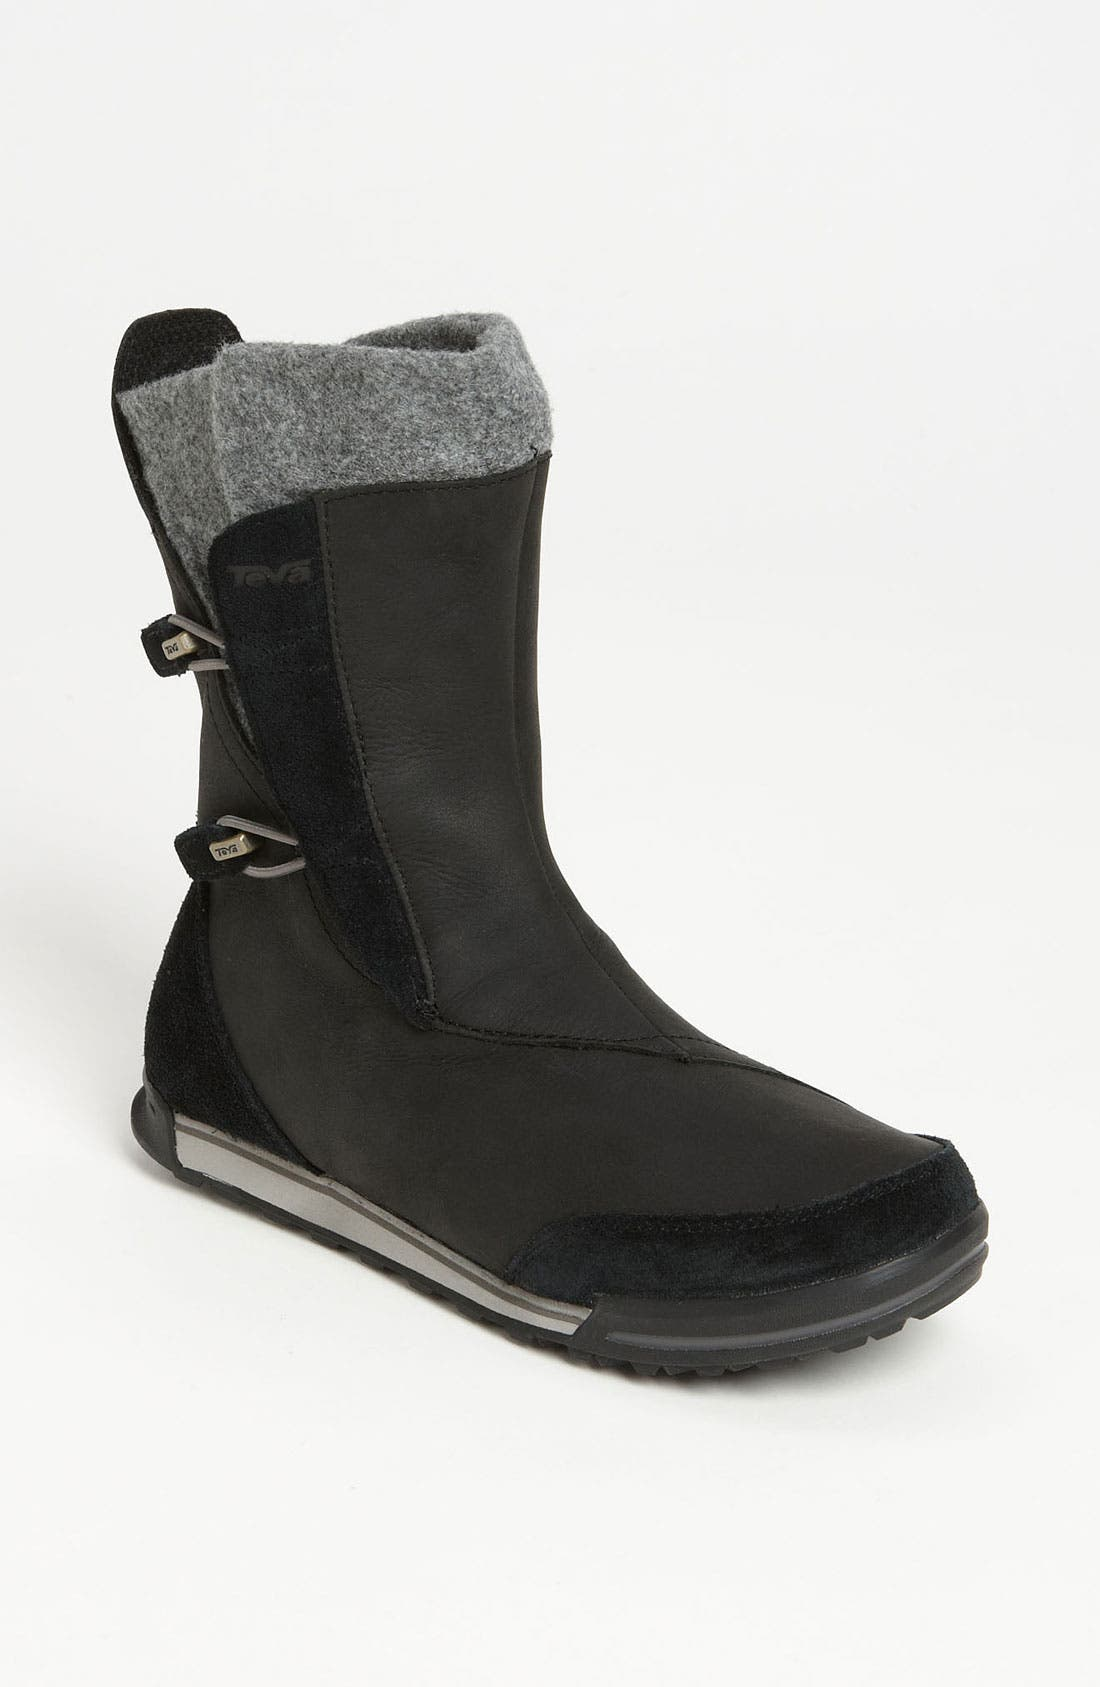 Main Image - Teva 'Hayley' Waterproof Boot